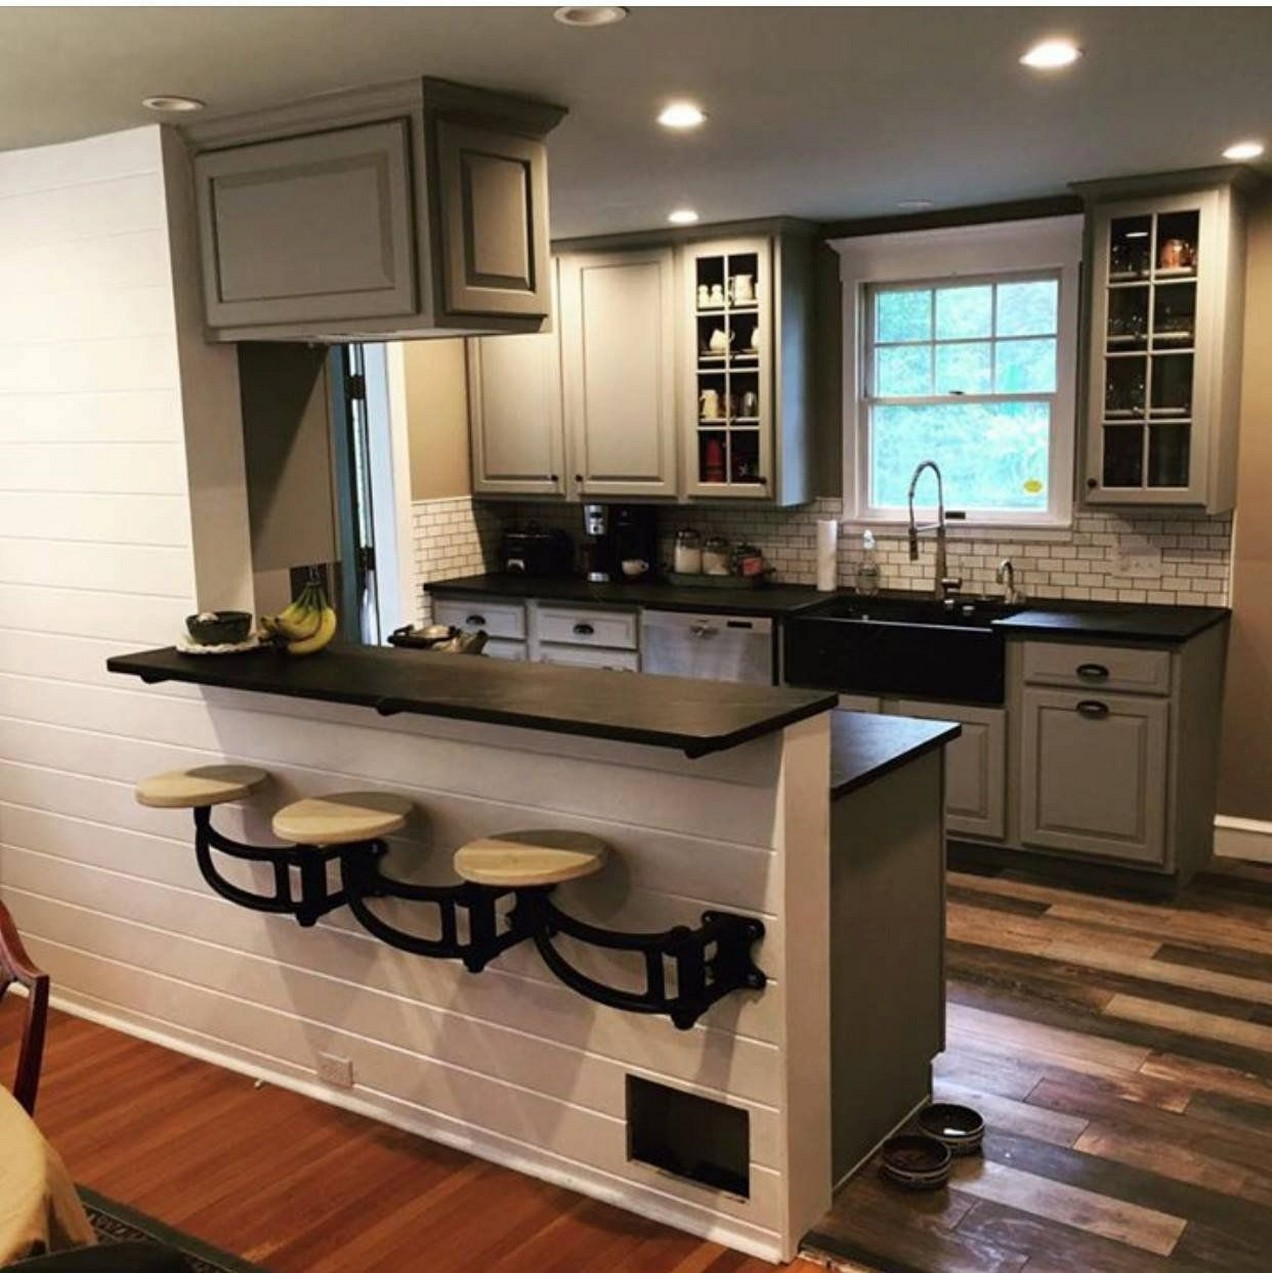 21 Most Popular Kitchen Design Pictures Get Inspiration And Ideas For Your Dream Kitchen 14